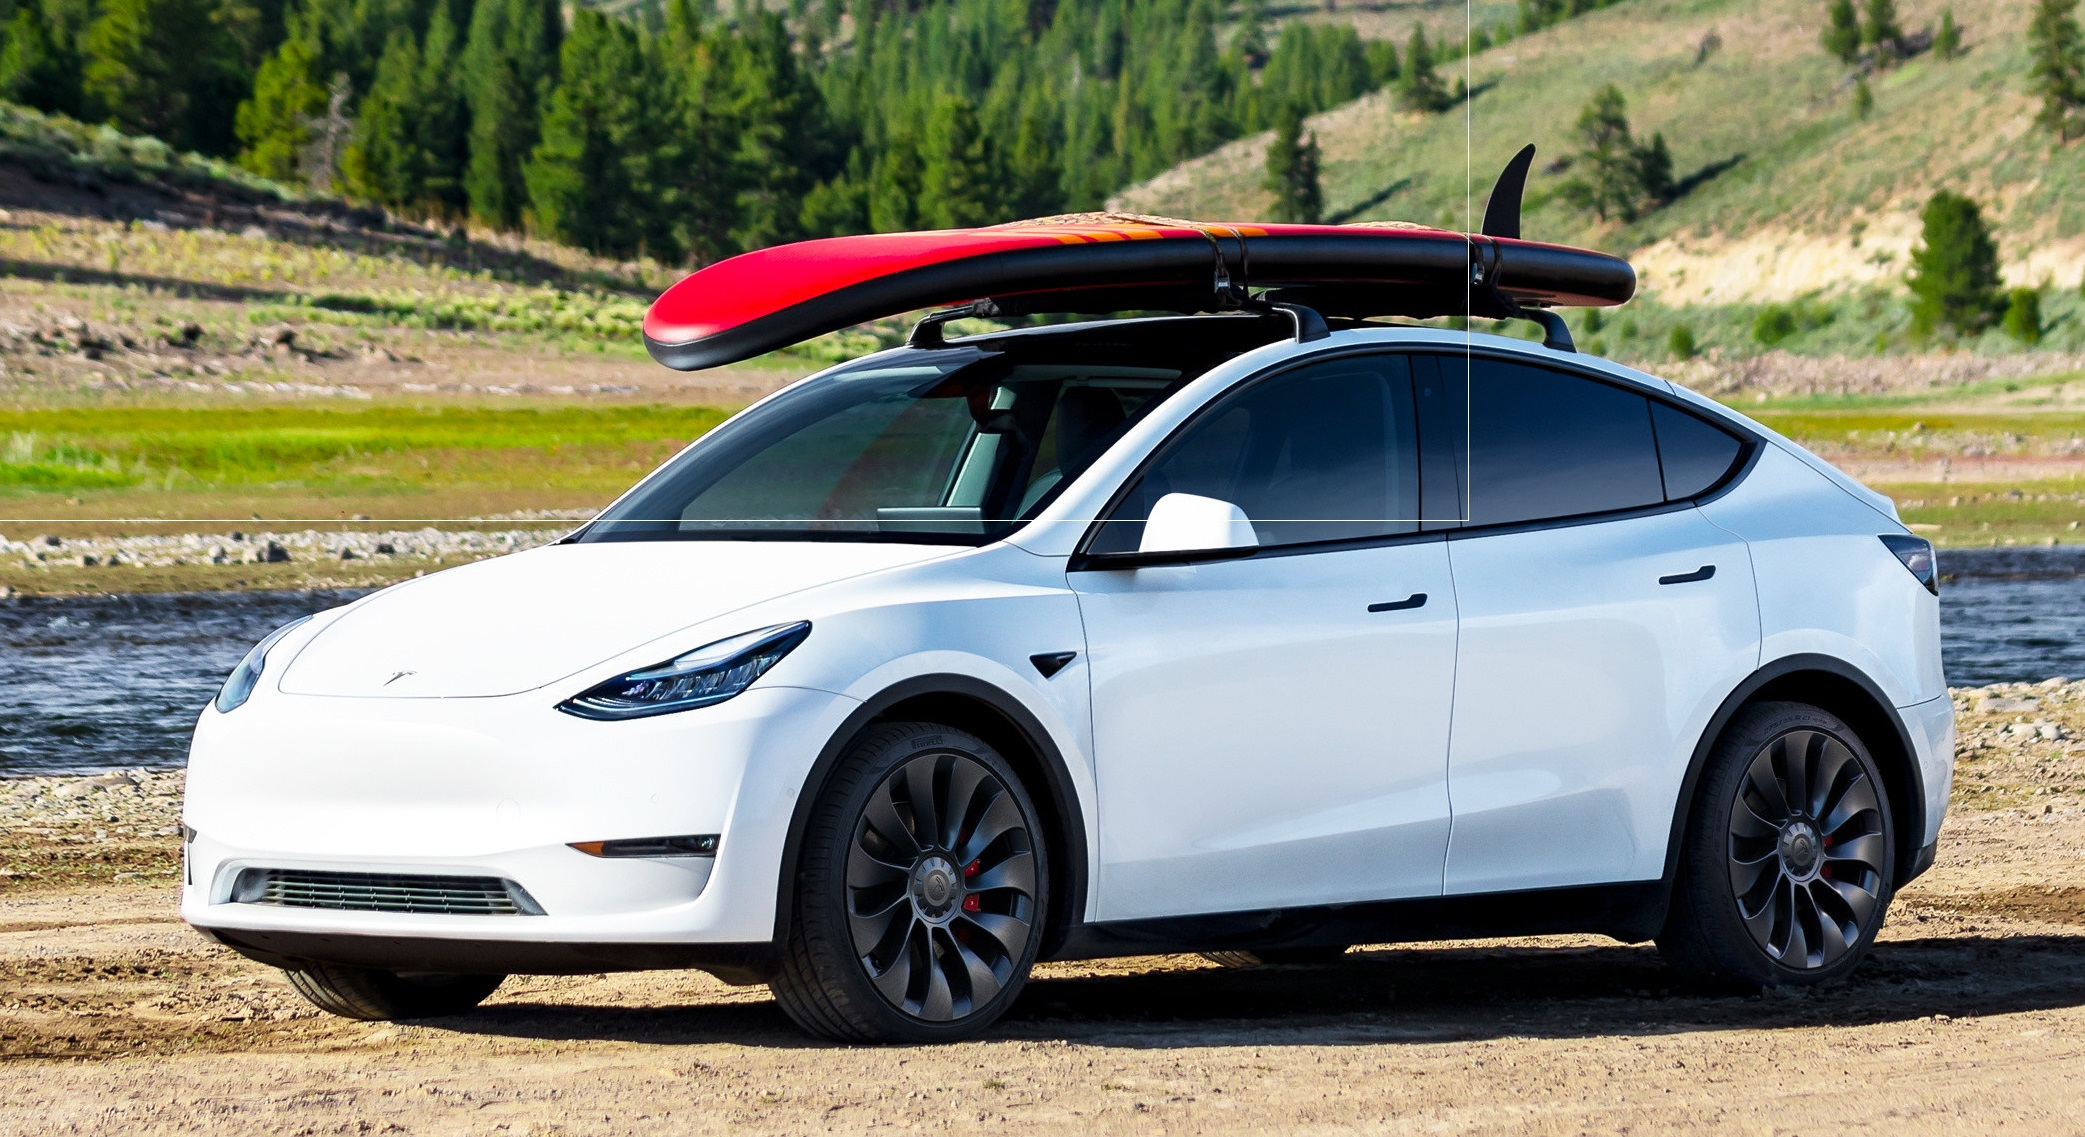 The 2020 Tesla Model Y long range EV SUV earned the overall top score in the 2021 AAA Car Guide